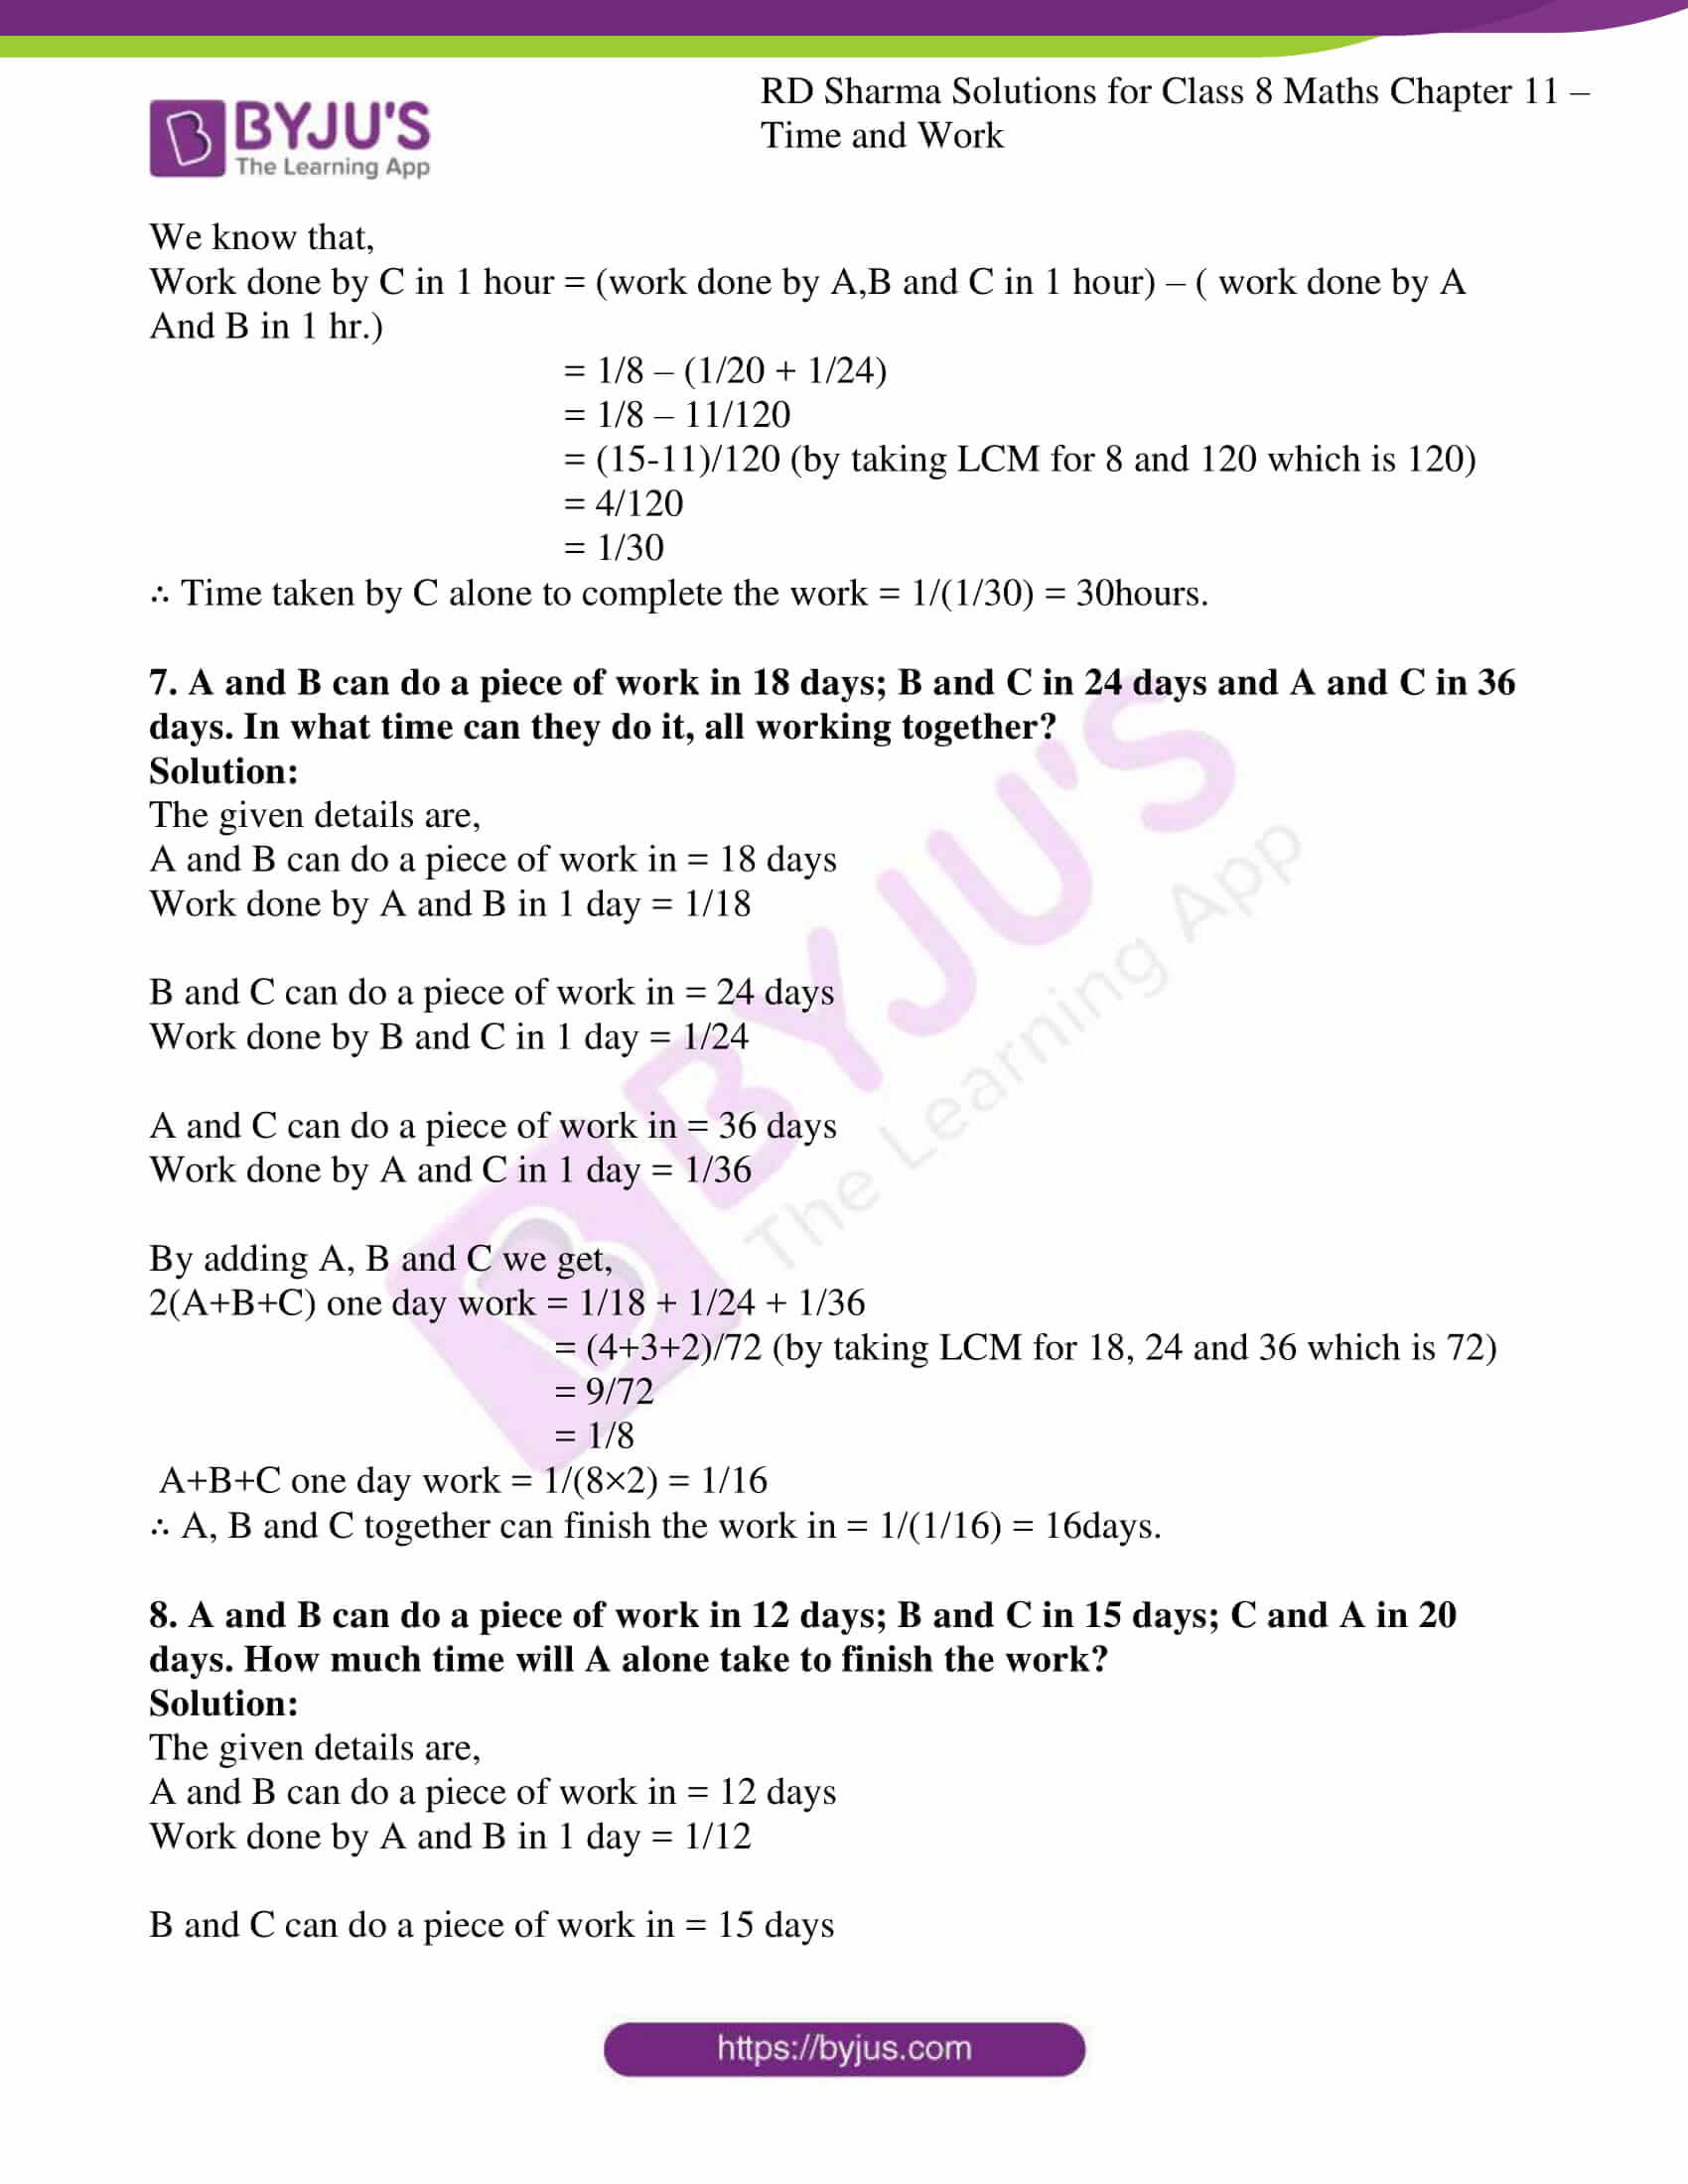 hight resolution of RD Sharma Solutions for Class 8 Chapter 11 Time and Work free download pdf